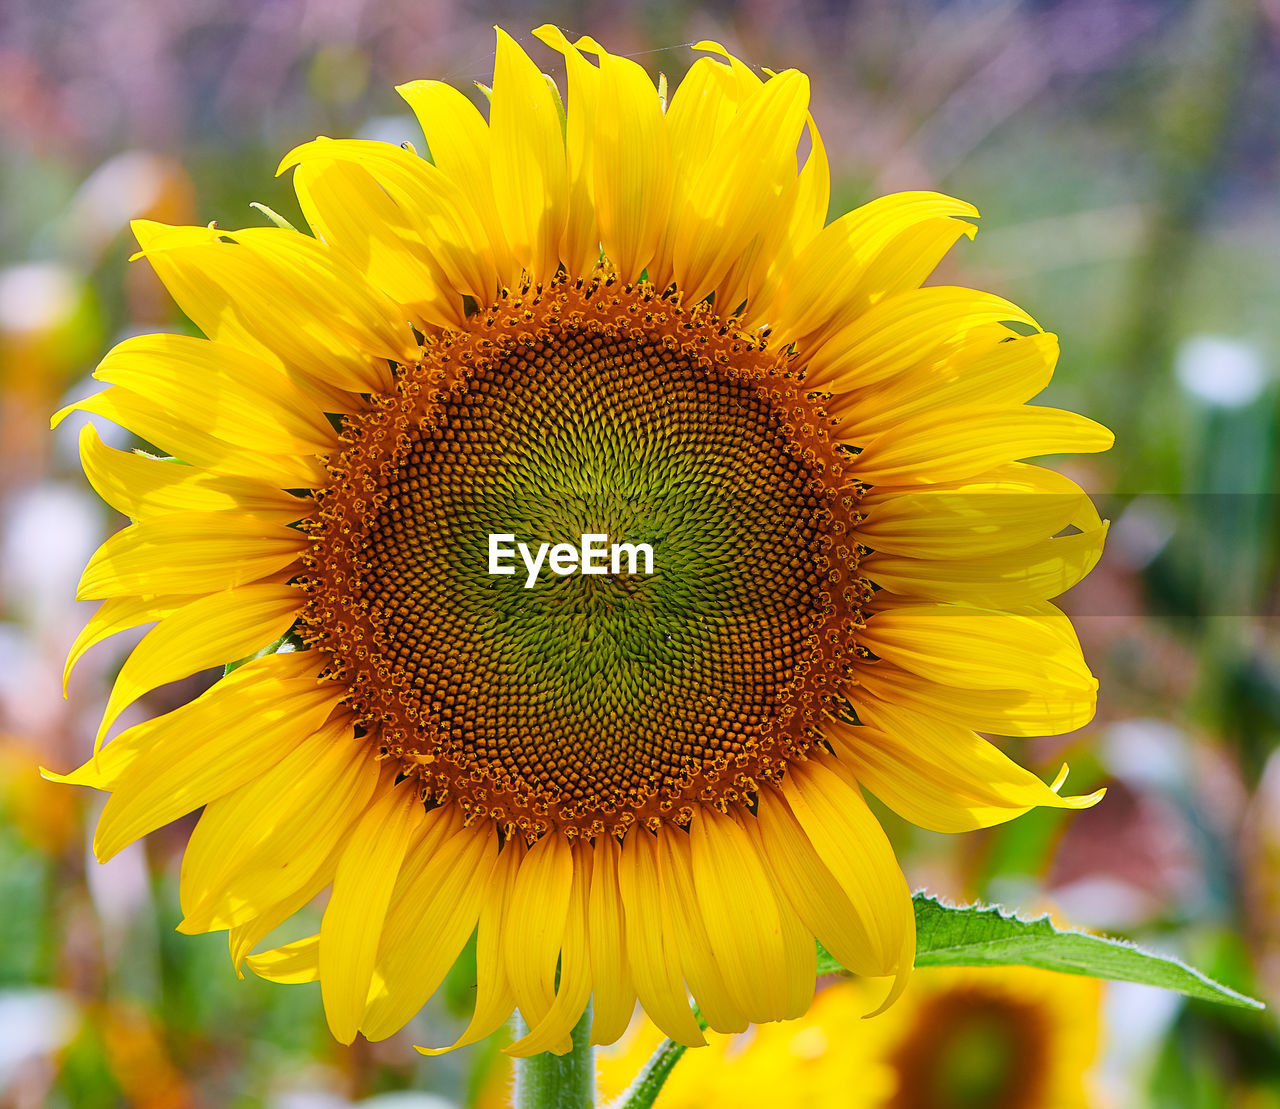 flowering plant, flower, yellow, petal, flower head, vulnerability, freshness, fragility, growth, beauty in nature, close-up, plant, inflorescence, focus on foreground, sunflower, pollen, nature, day, no people, botany, outdoors, pollination